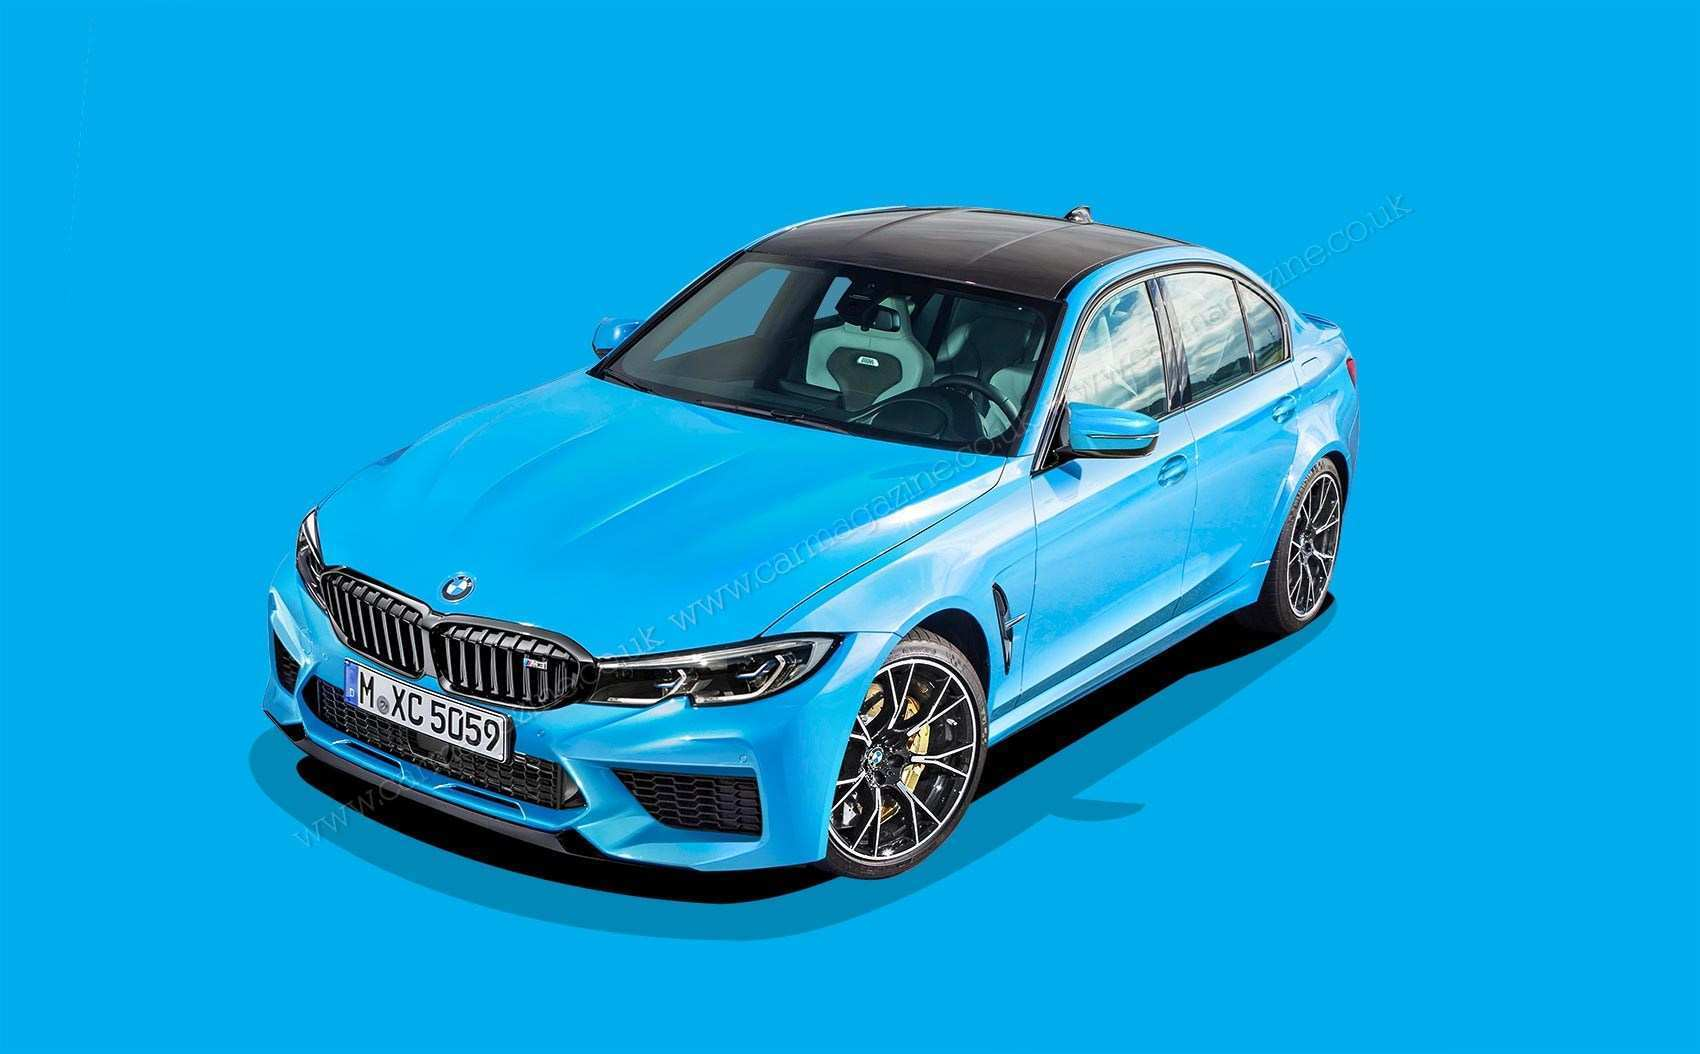 90 The 2020 BMW M3 Style for 2020 BMW M3